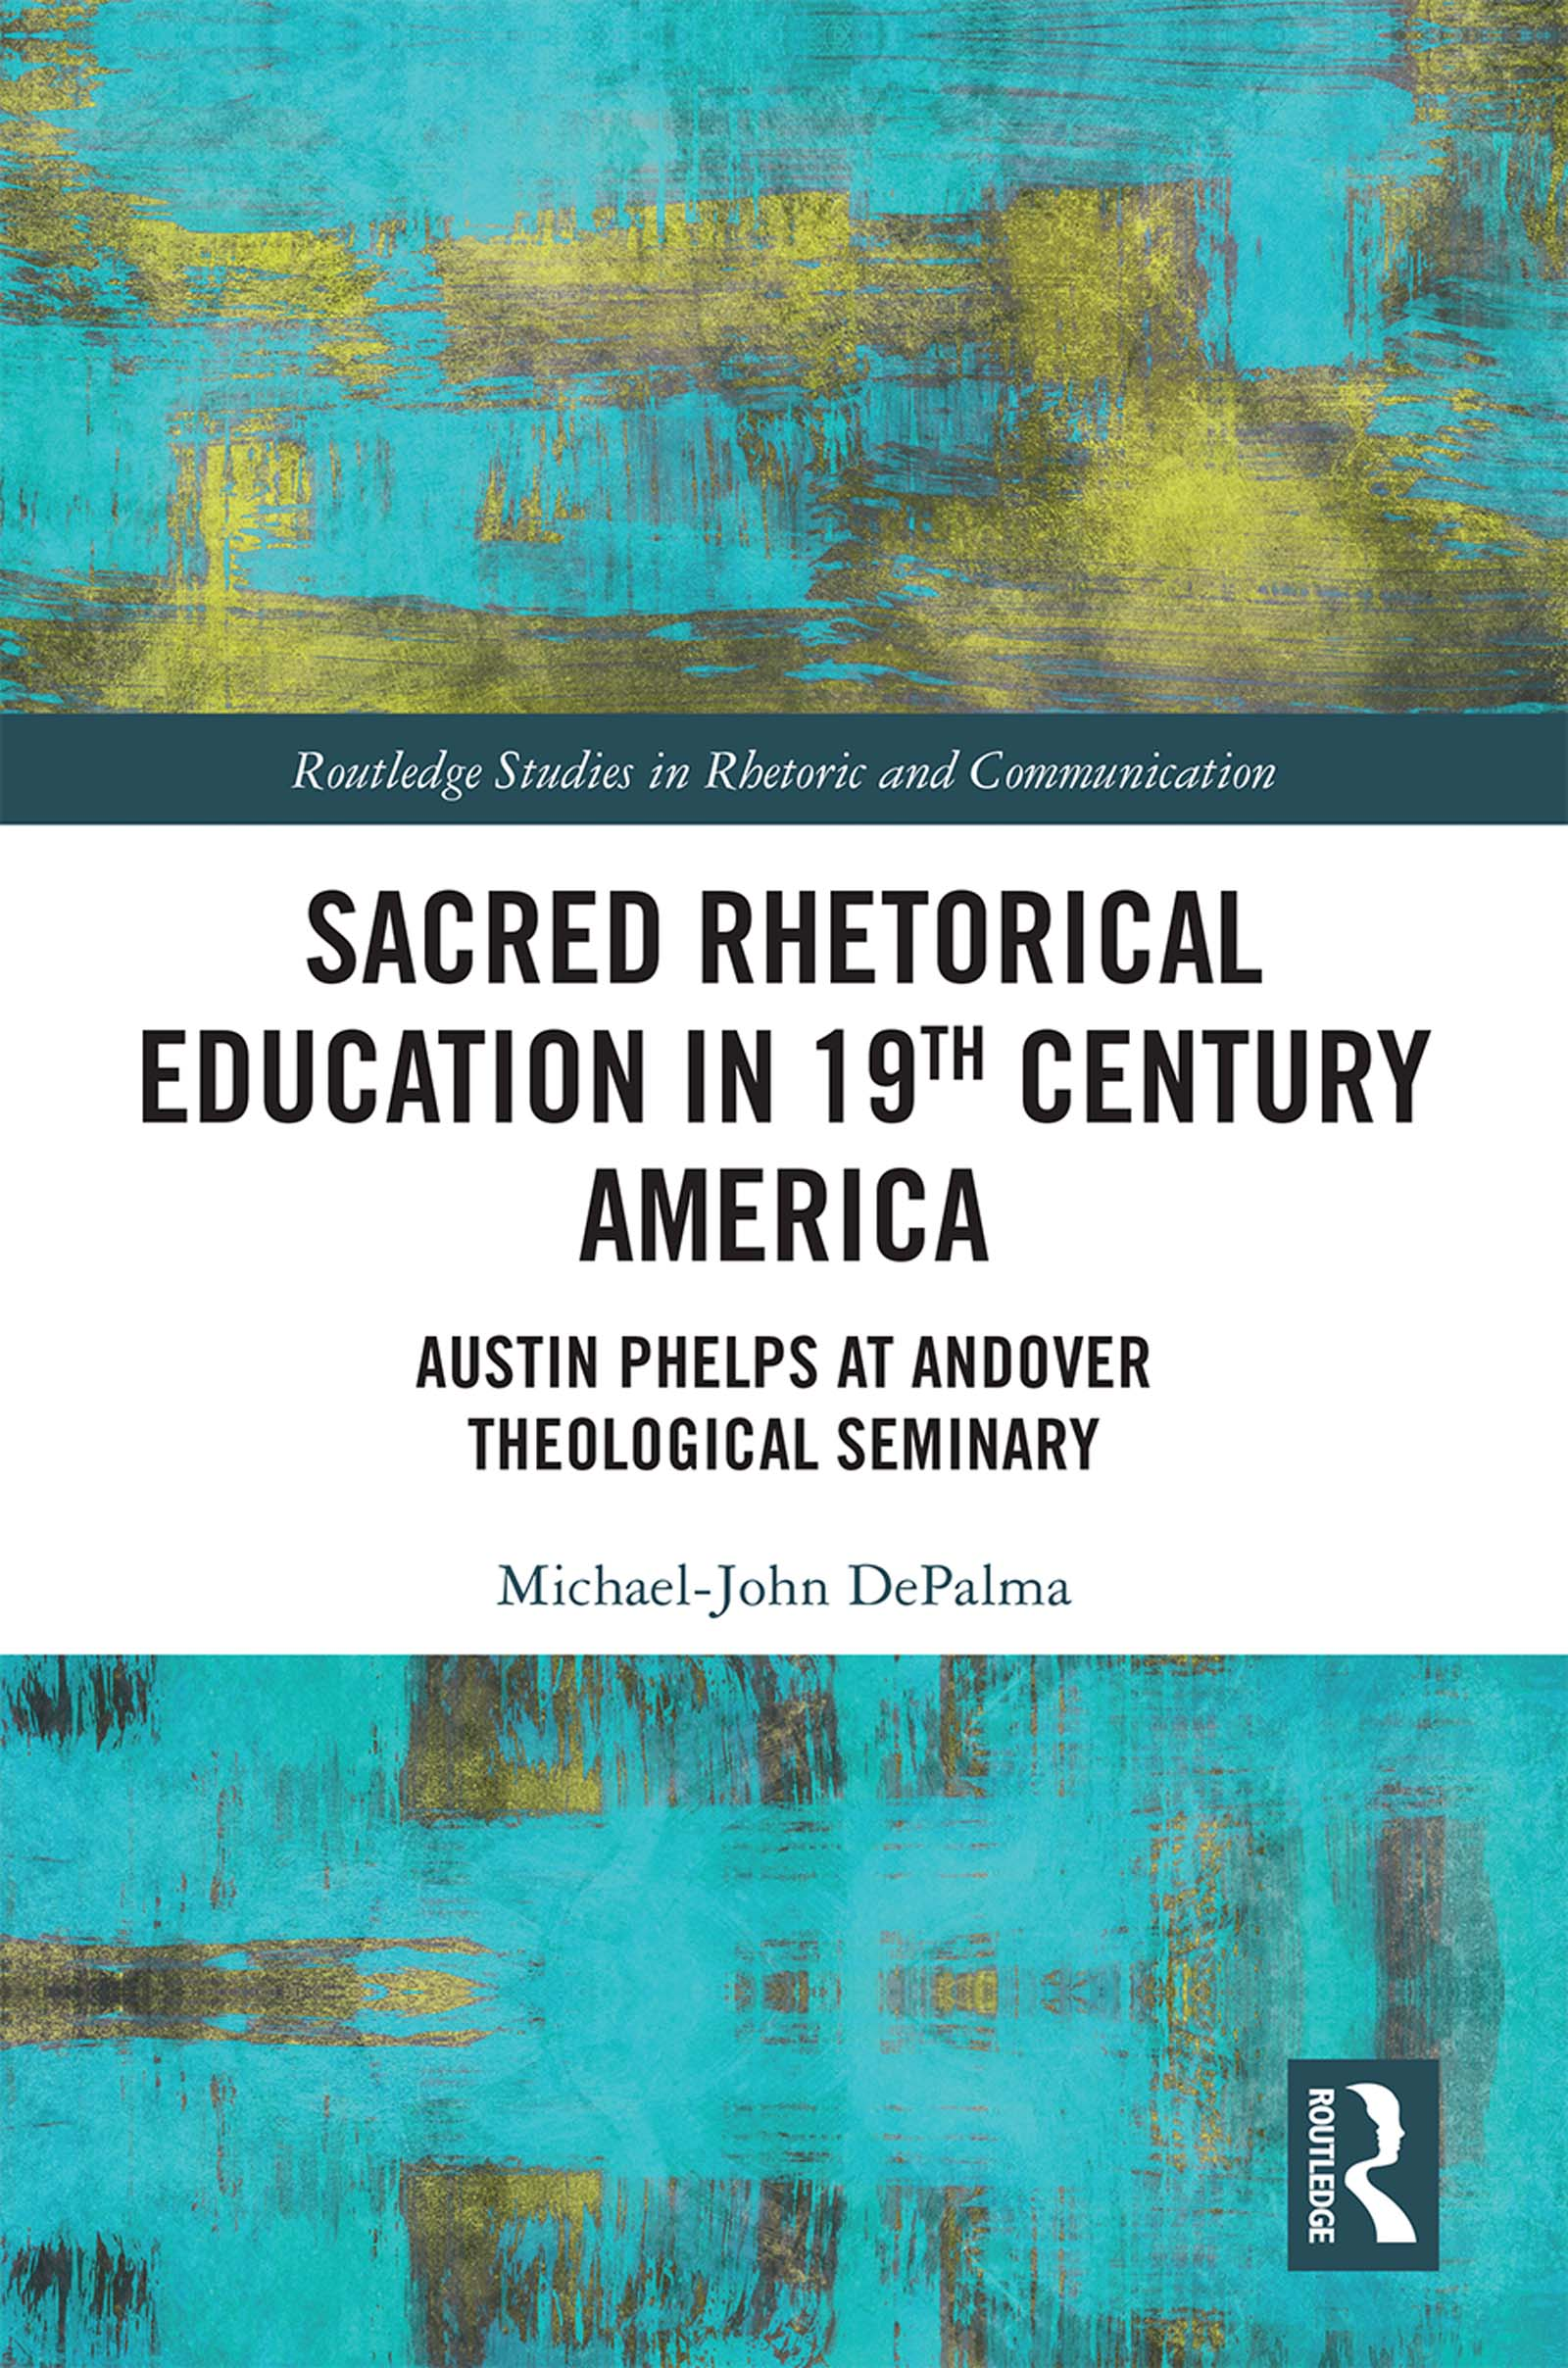 Sacred Rhetorical Education in 19th Century America: Austin Phelps at Andover Theological Seminary book cover